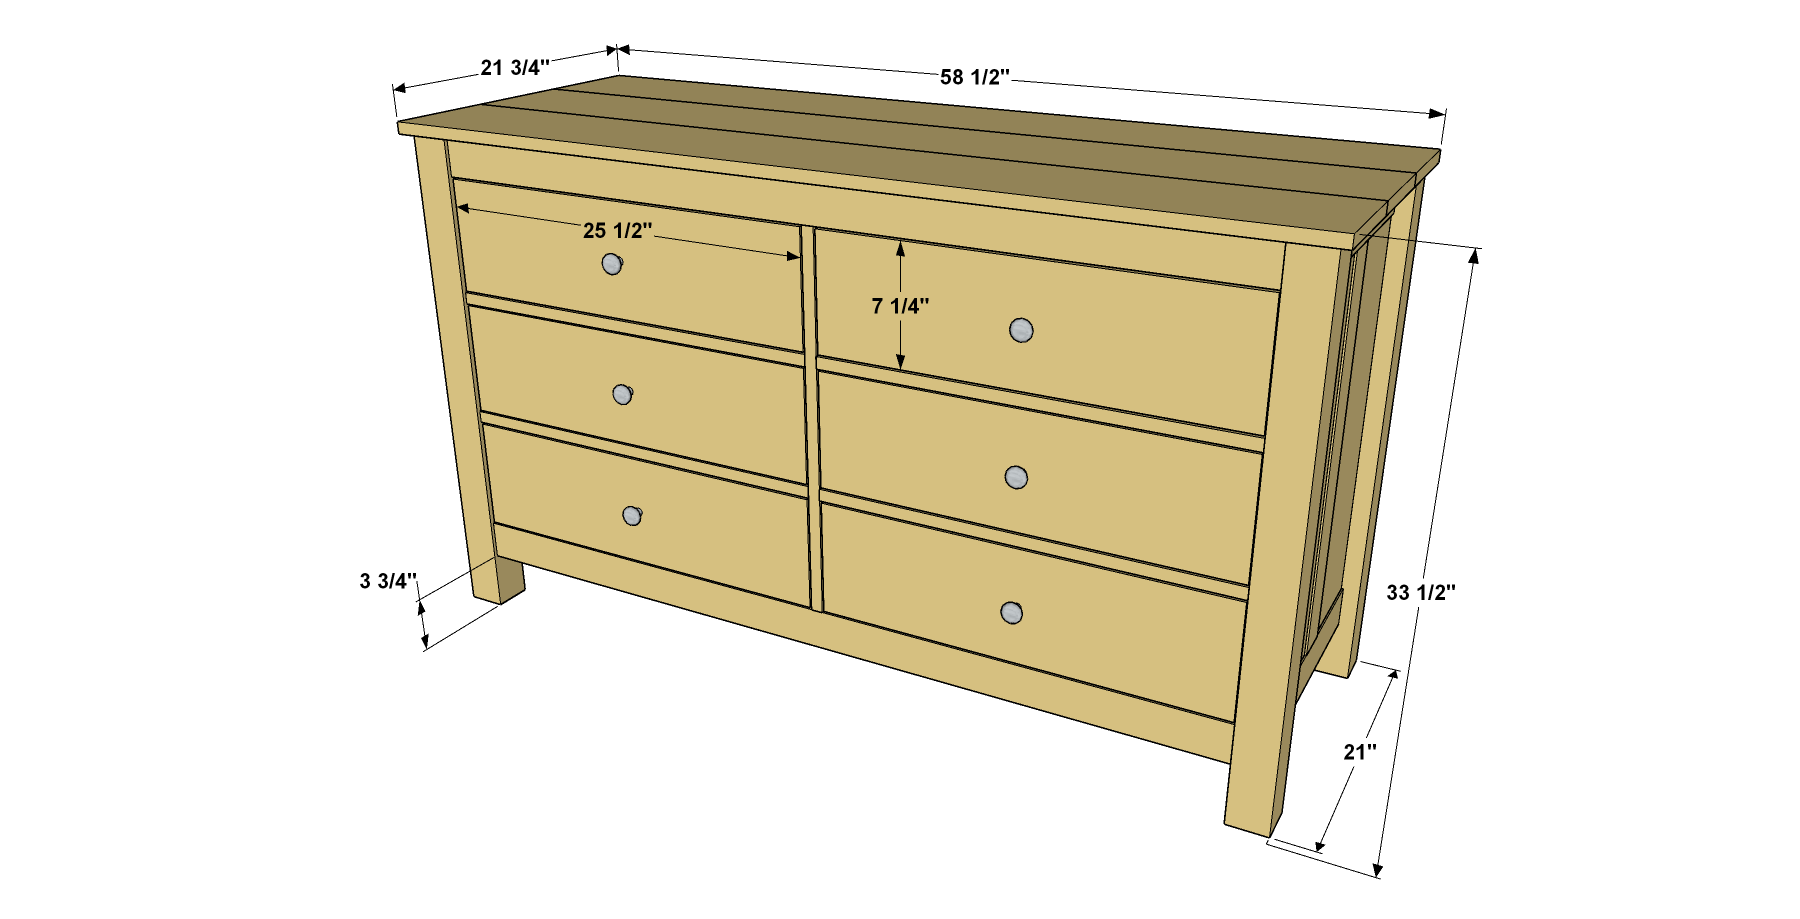 six-drawer-dresser-overall-with-dimensions